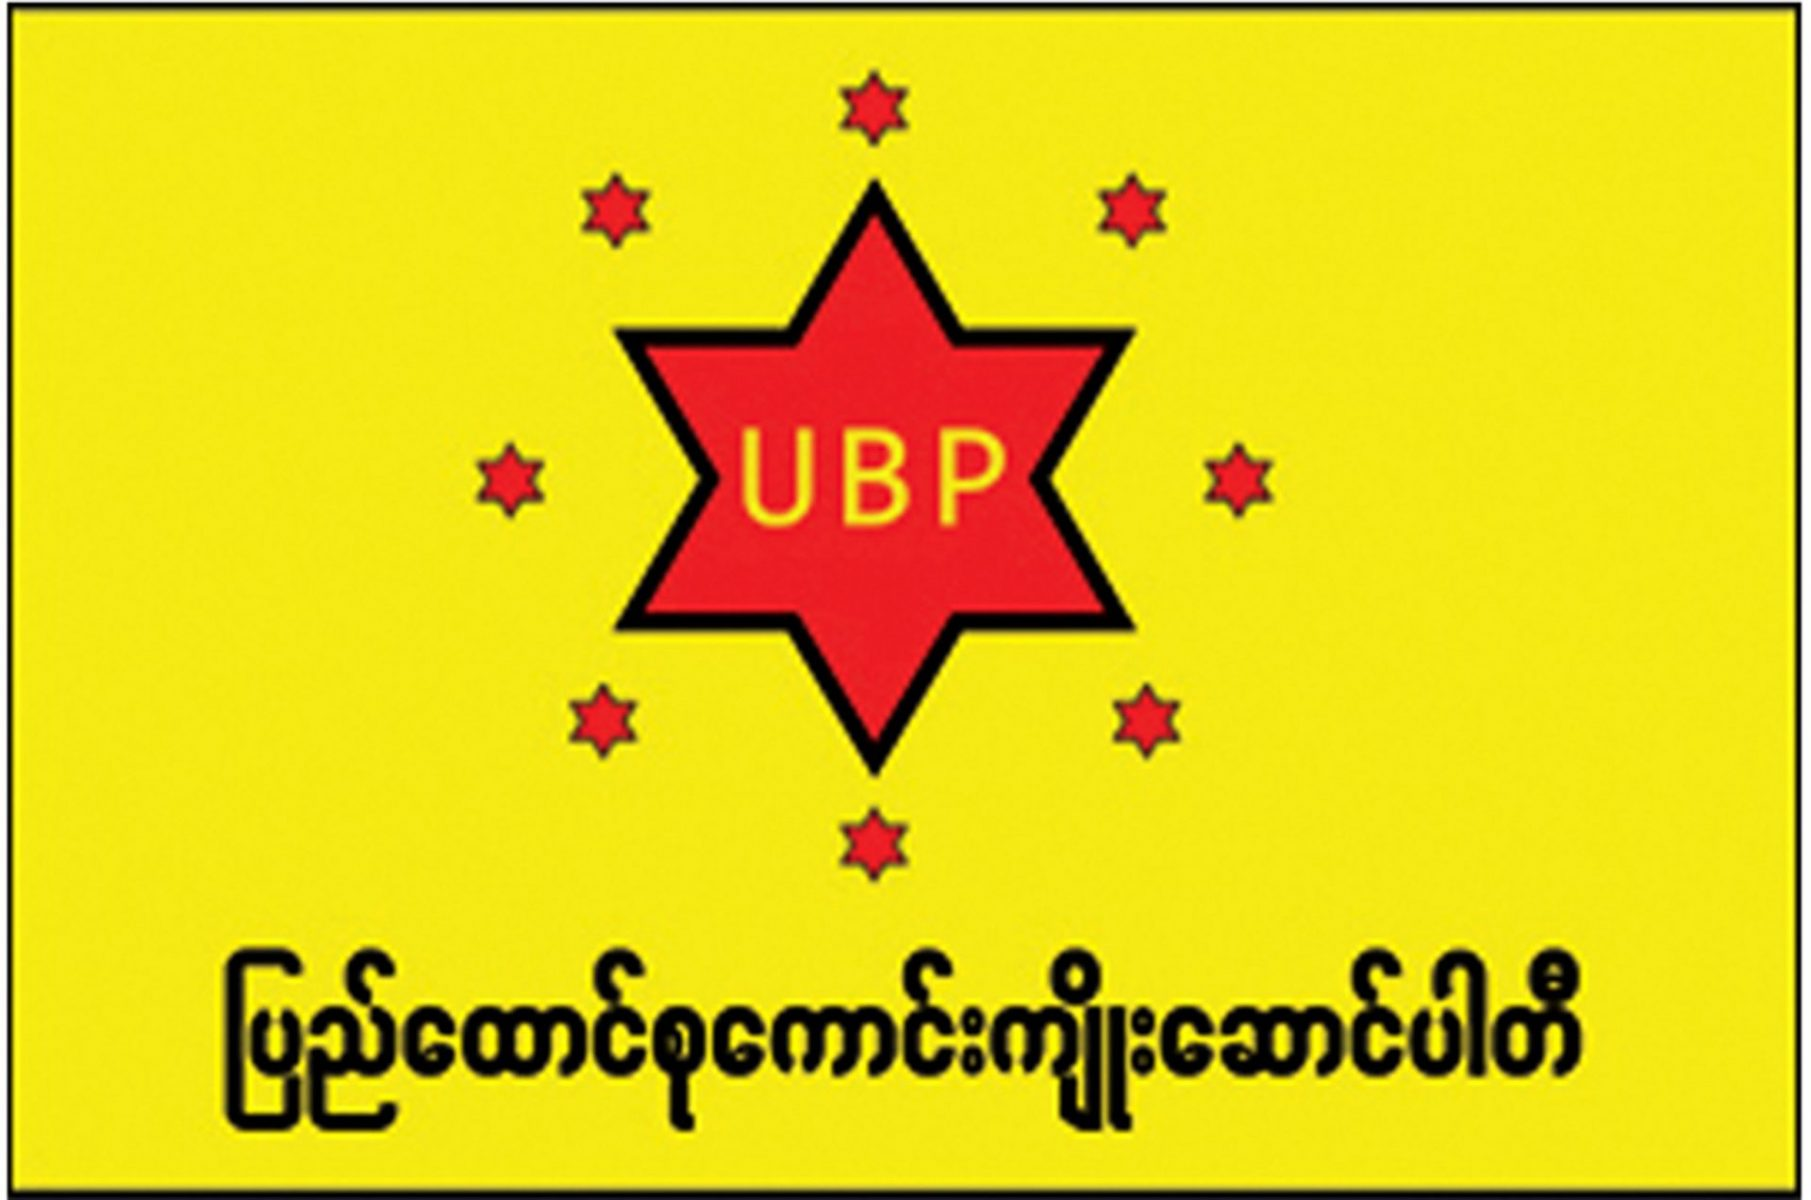 Union Betterment Party scaled